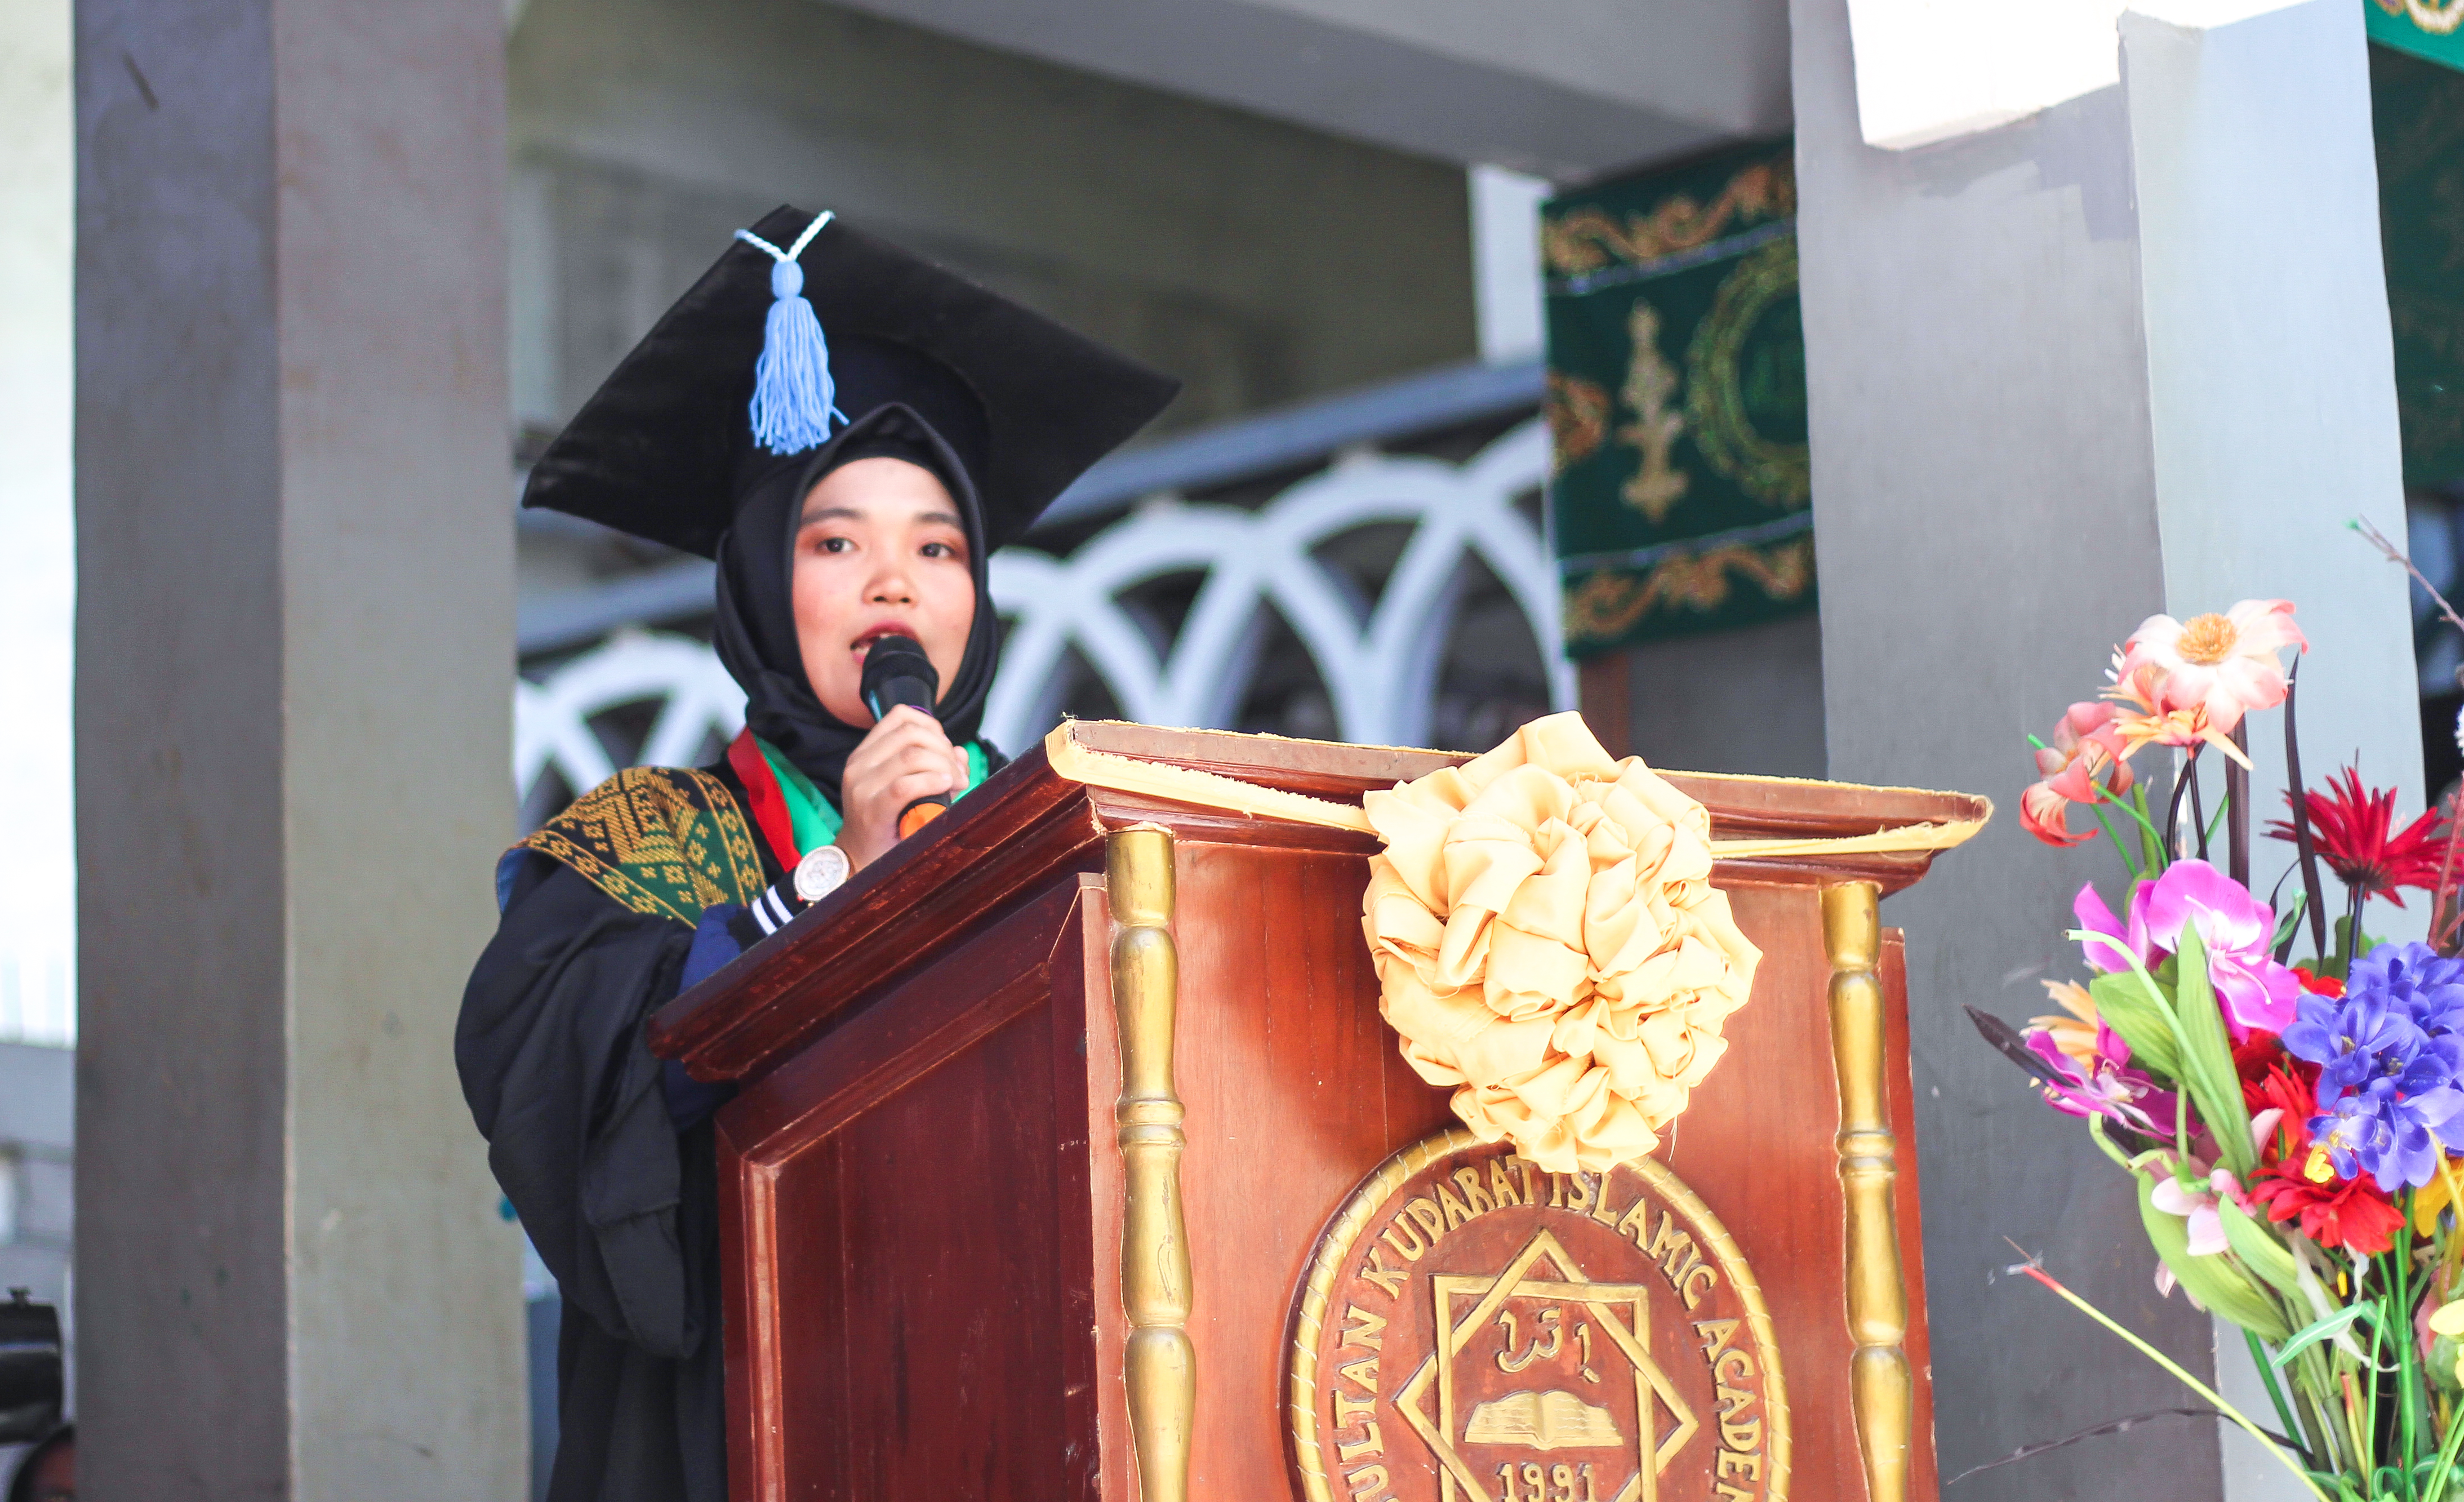 Bachelor of Secondary Educatio - Major in English, Cum Laude